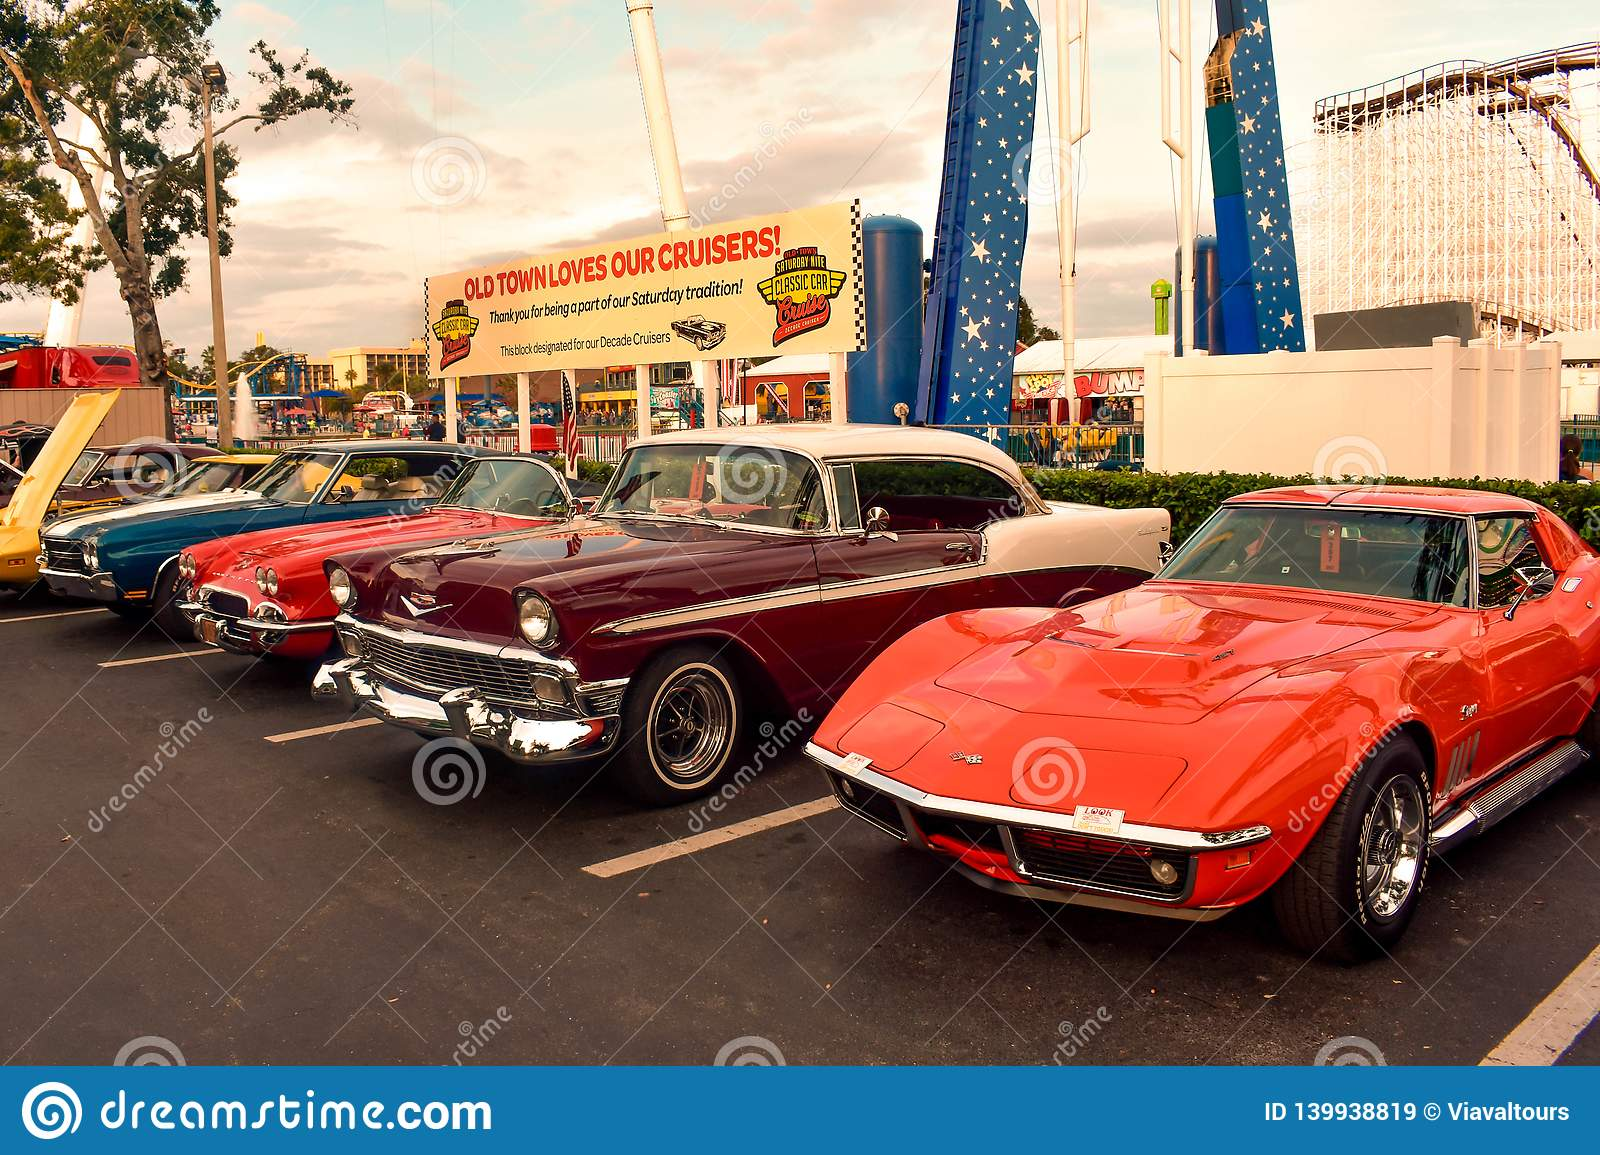 Saturday Nite Classic Car Show And Cruise Is A Weekend